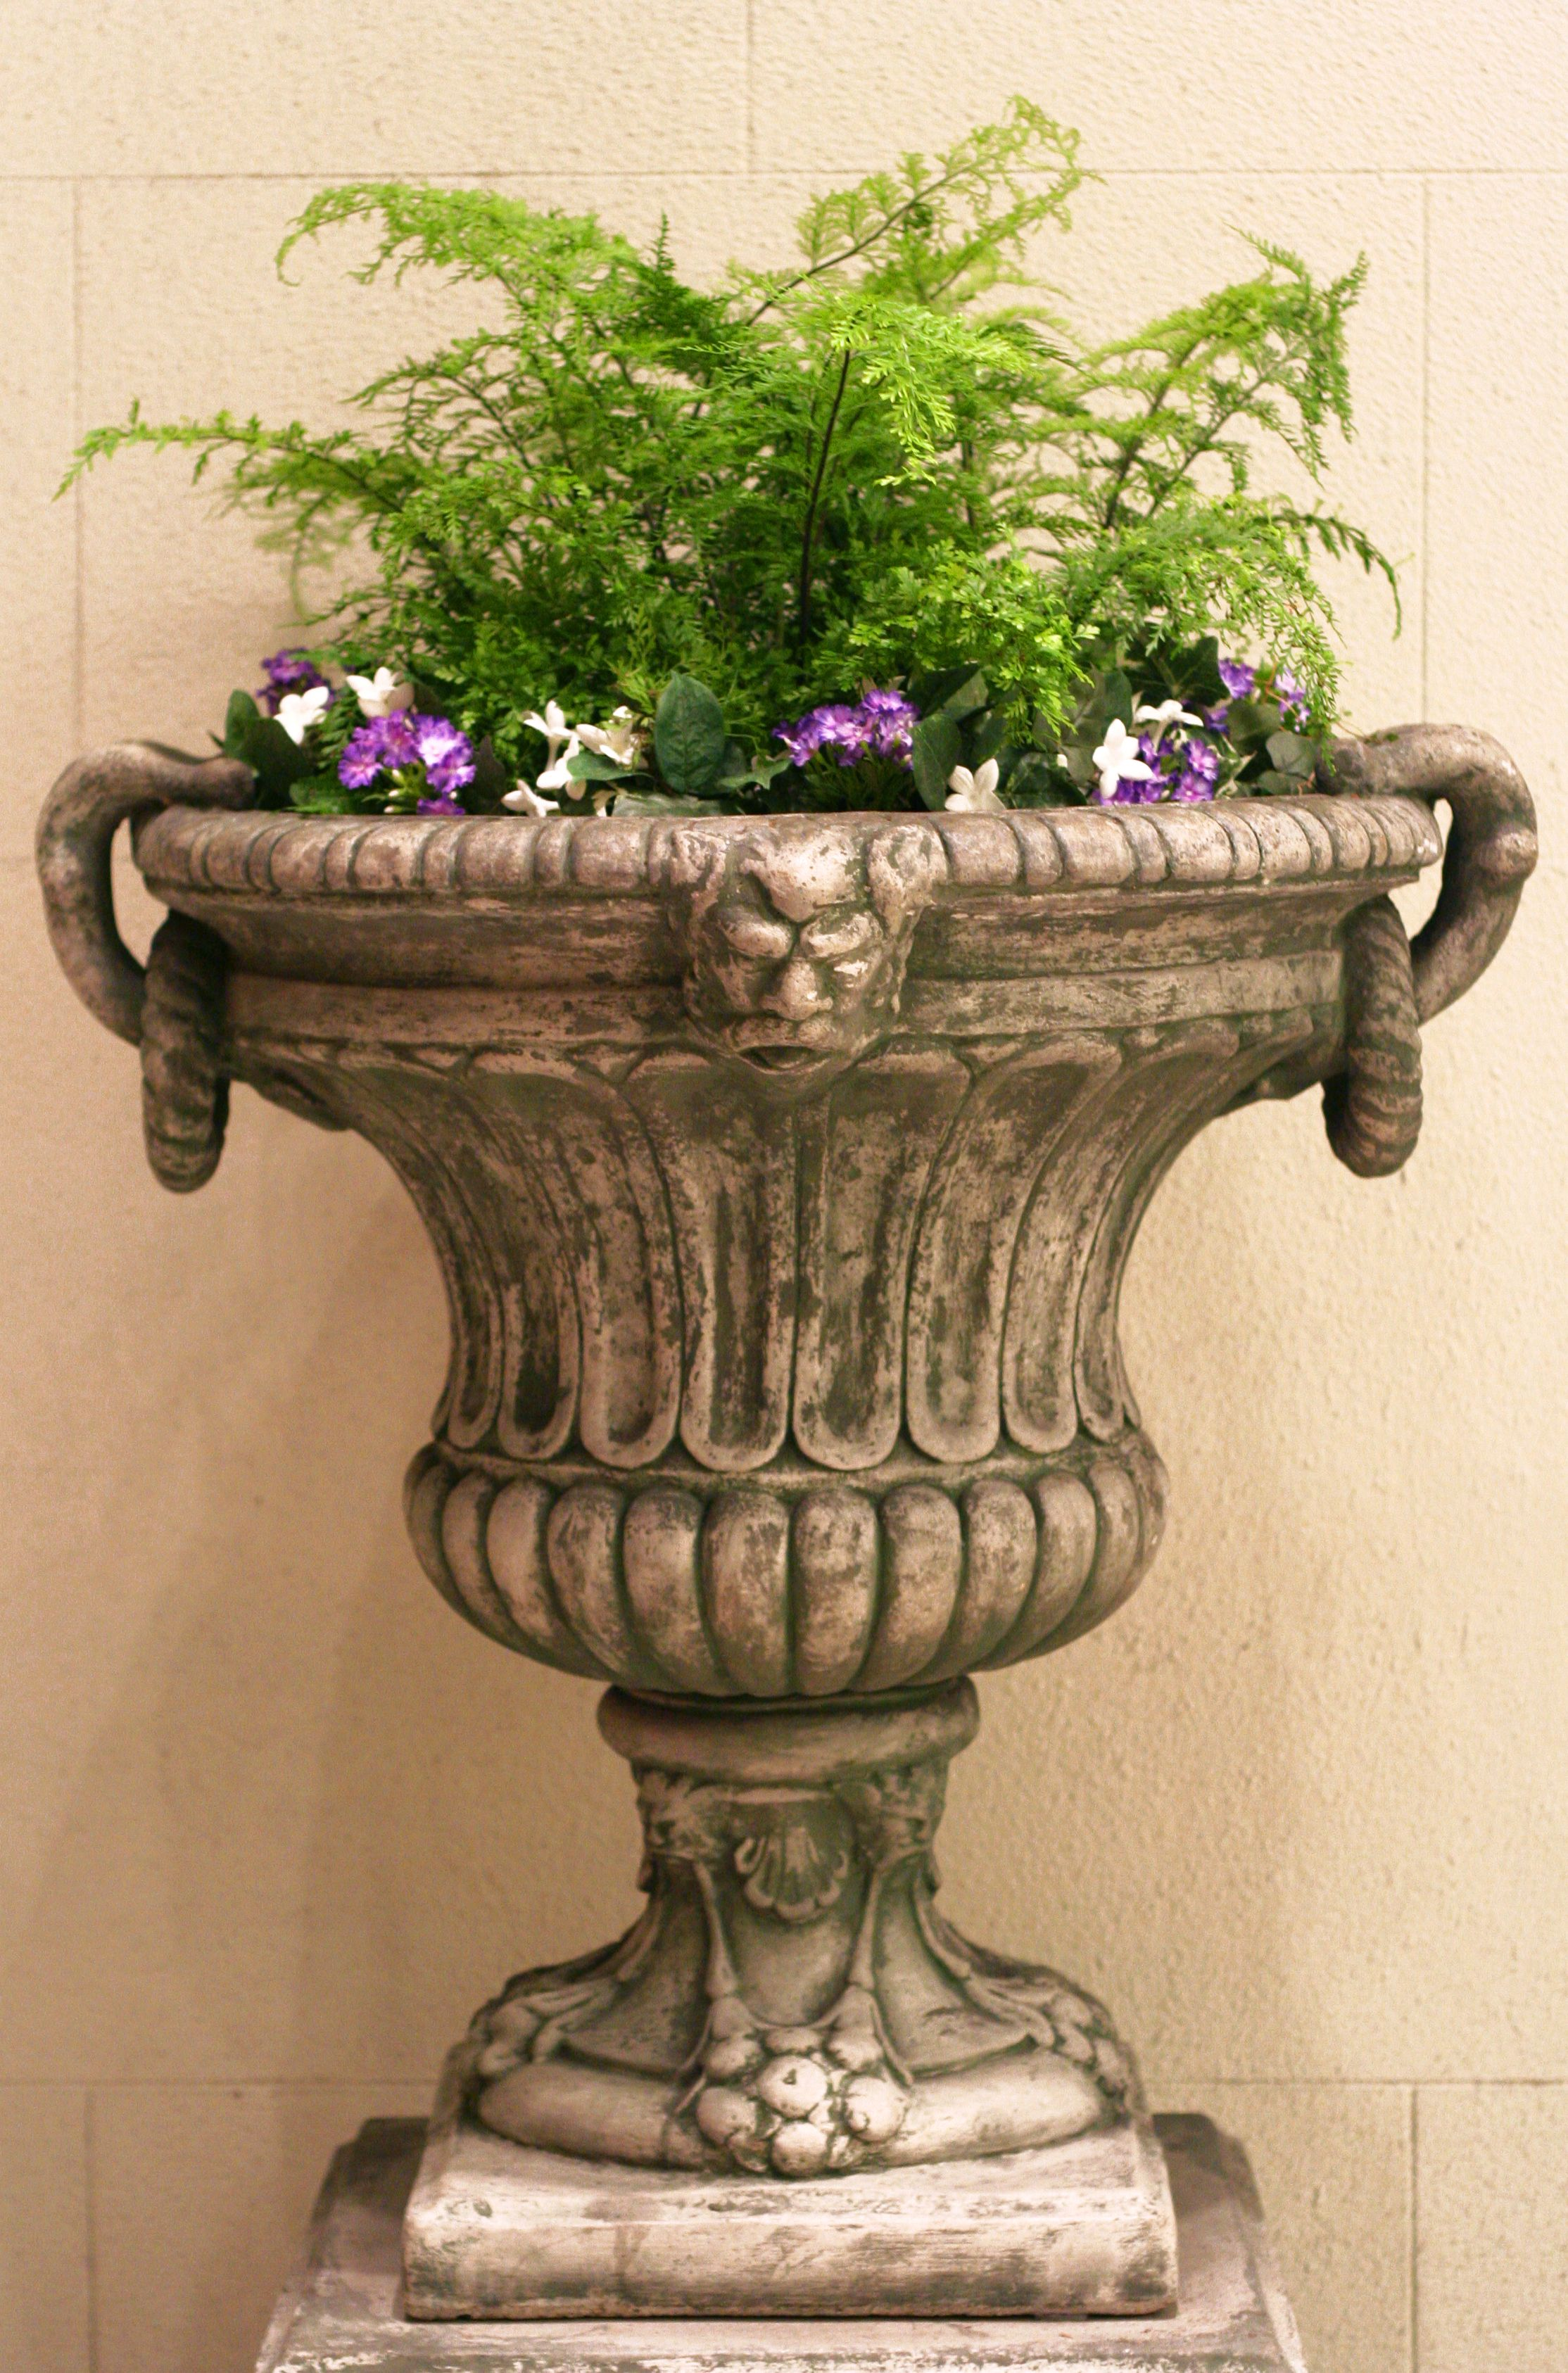 Urn decorated with ferns | Plant containers | Pinterest | Urn ...